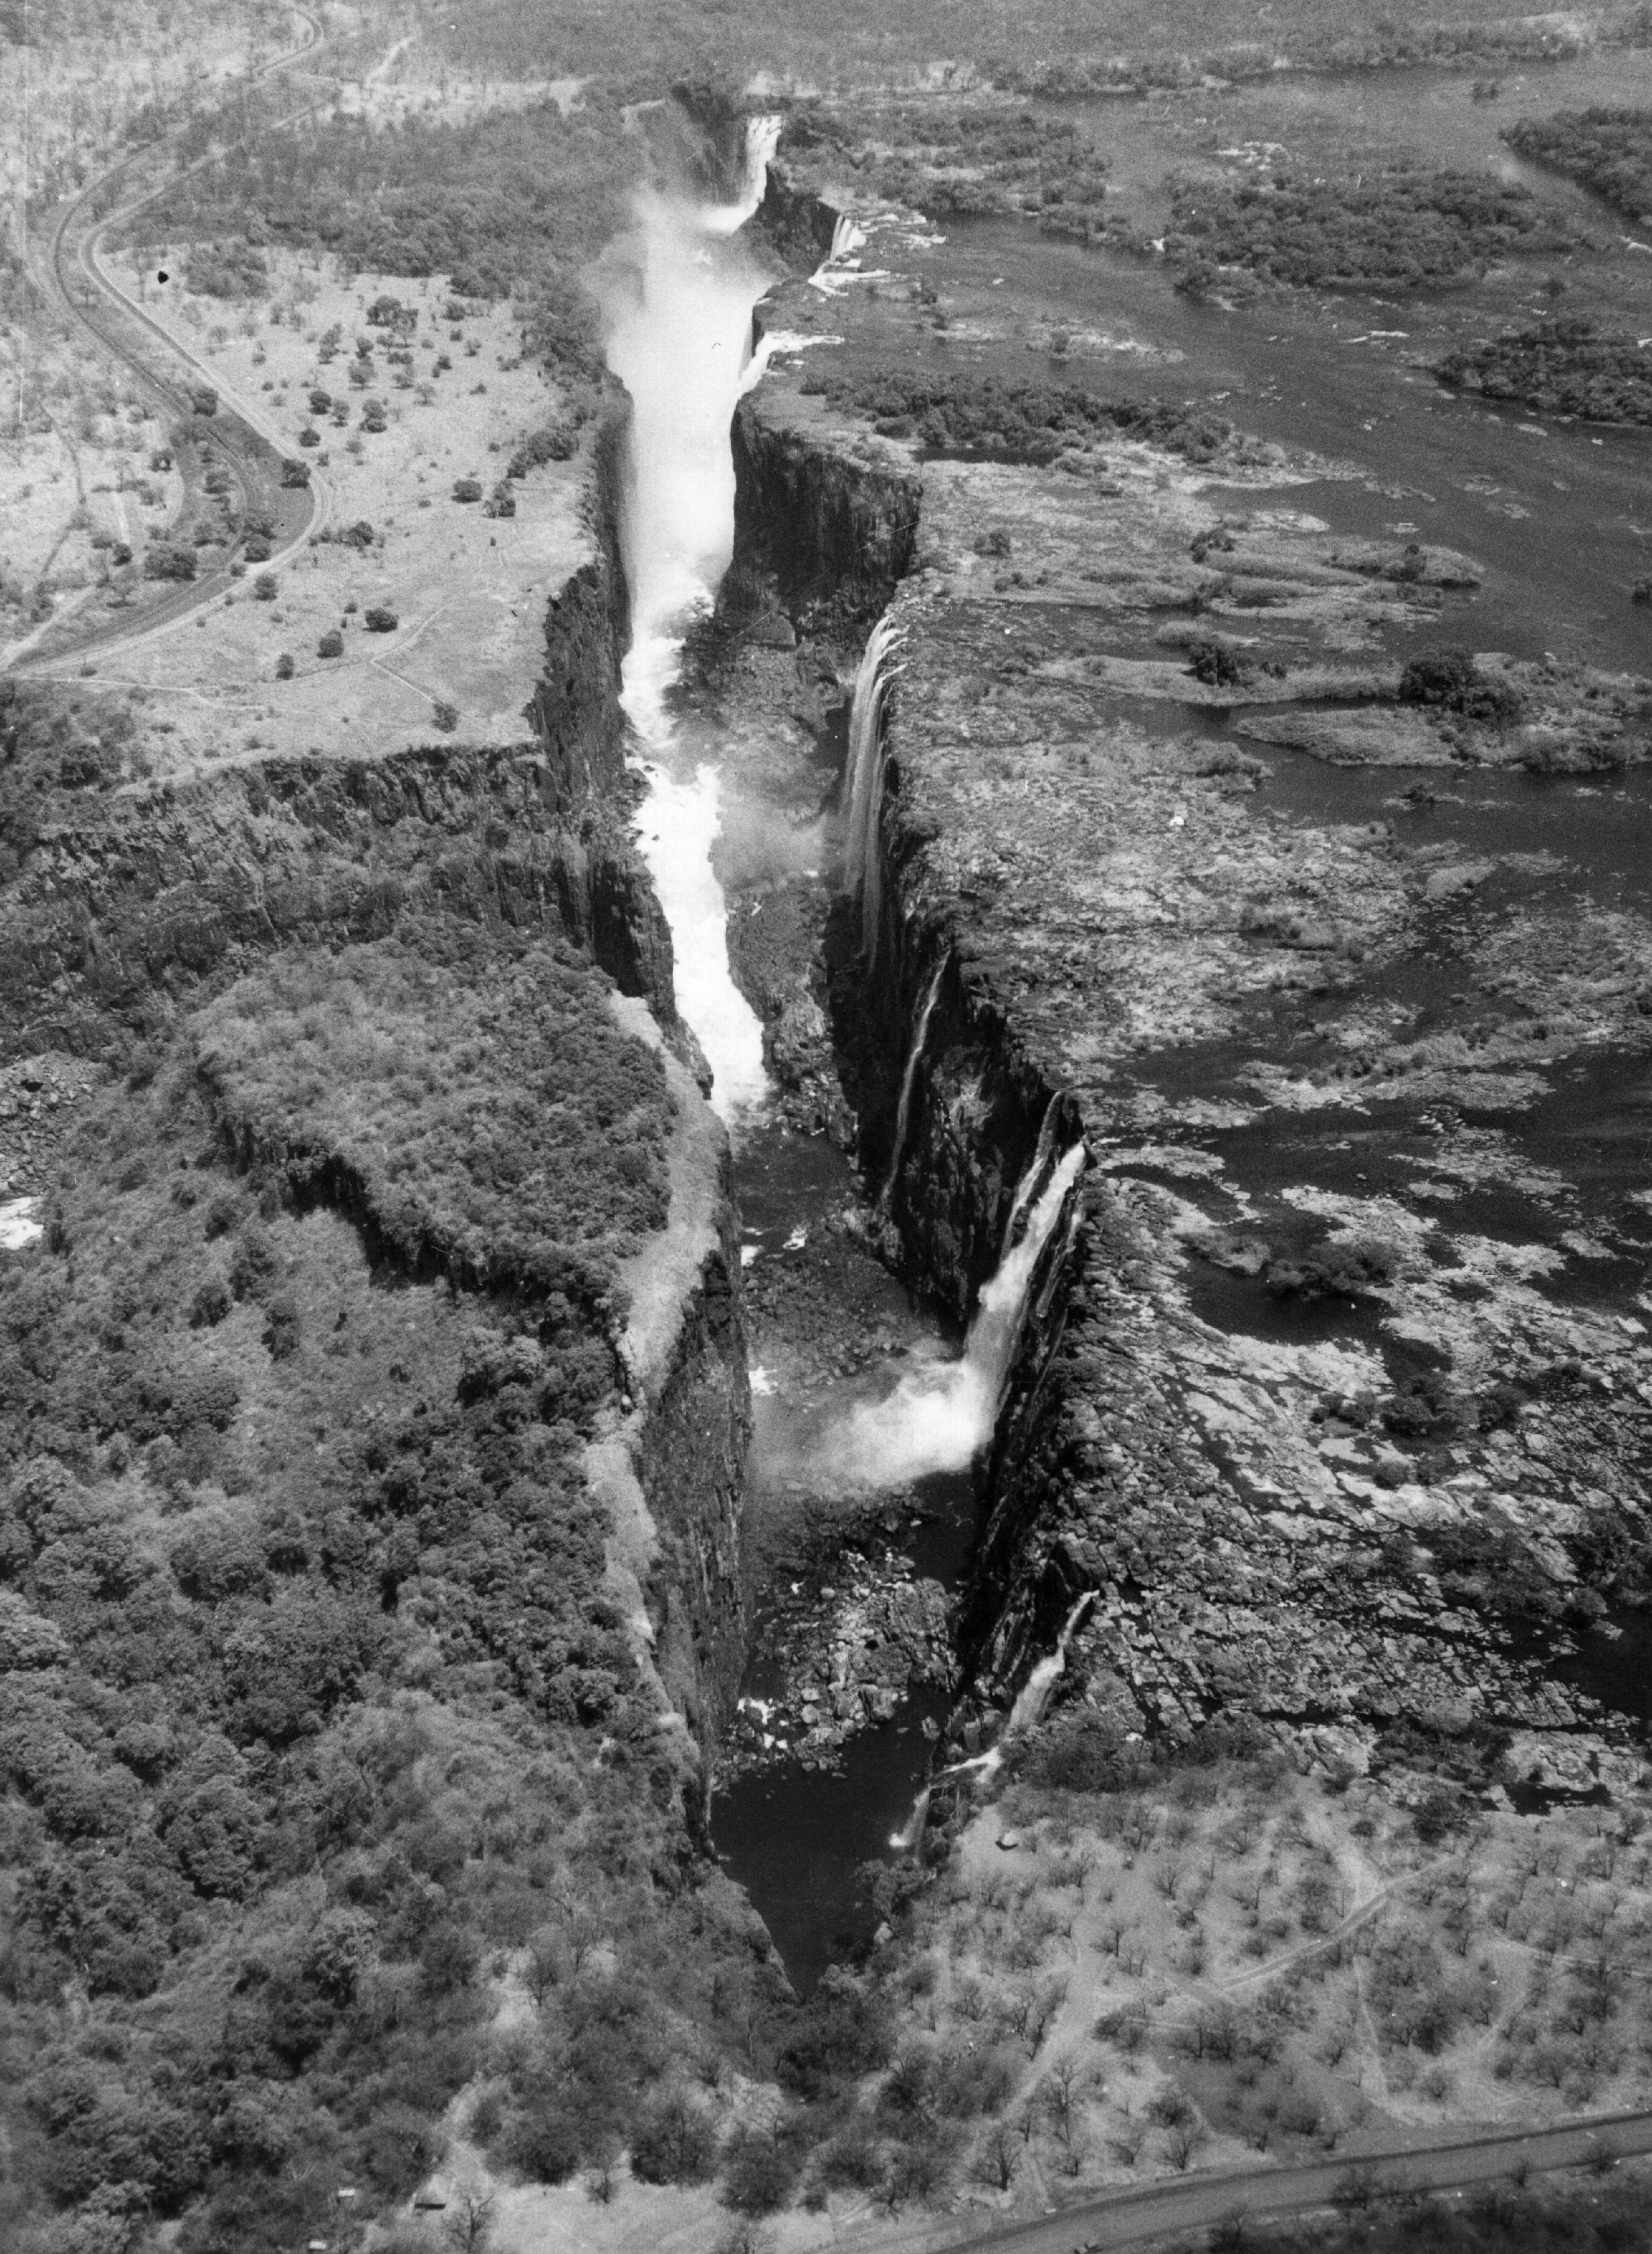 Slide 53 of 55: circa 1960: The Victoria Falls (Mosi oa Tunya) on the borders of Zimbabwe (Southern Rhodesia) and Zambia (Northern Rhodesia) where the Zambesi river plunges 108 metres (355 ft). (Photo by Hulton Archive/Getty Images)